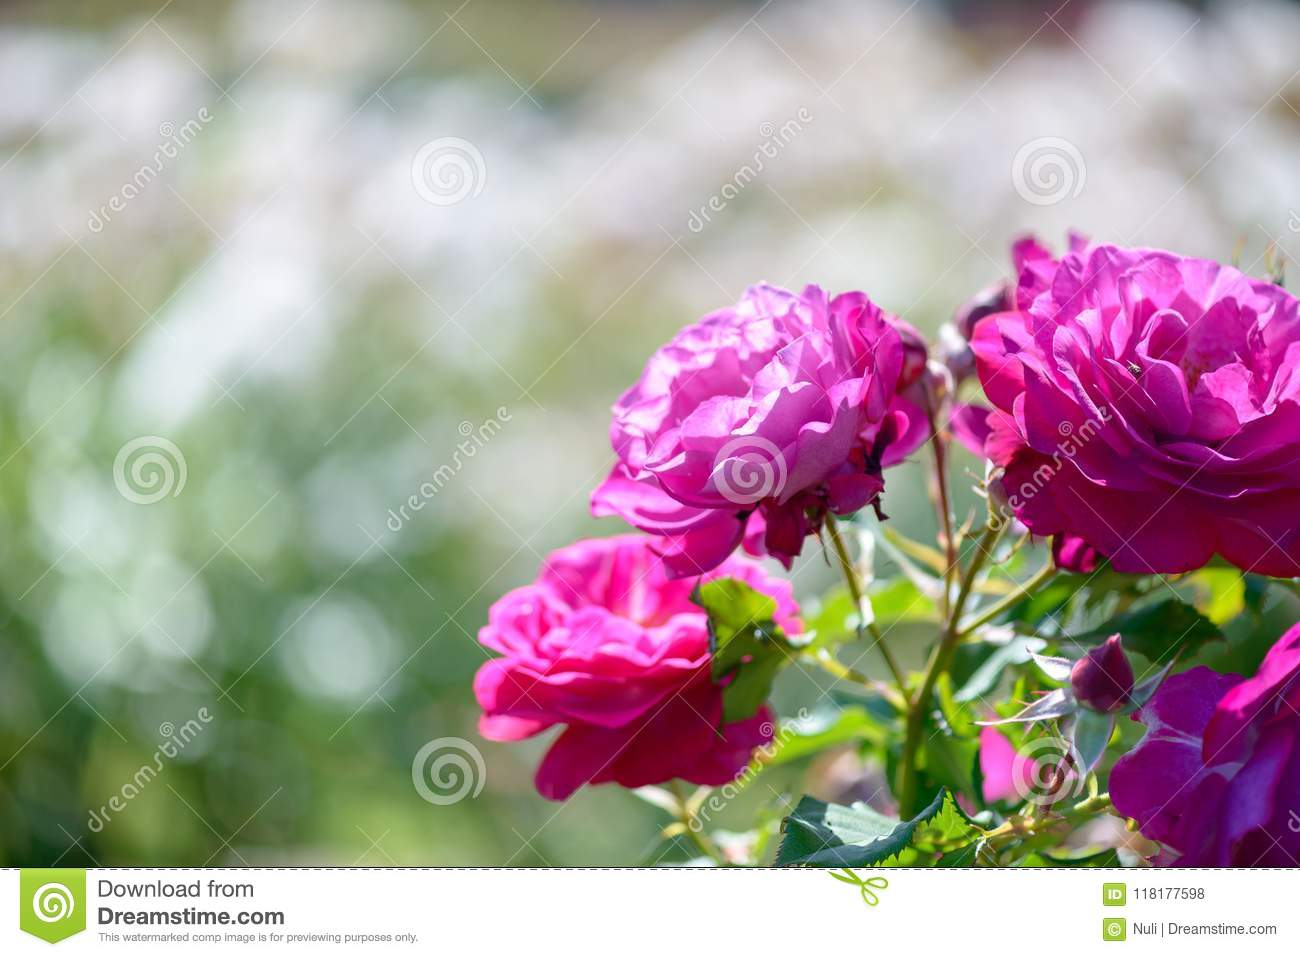 Beautiful pink and purple roses flowers with blurred green beautiful pink and purple roses flowers with blurred green background izmirmasajfo